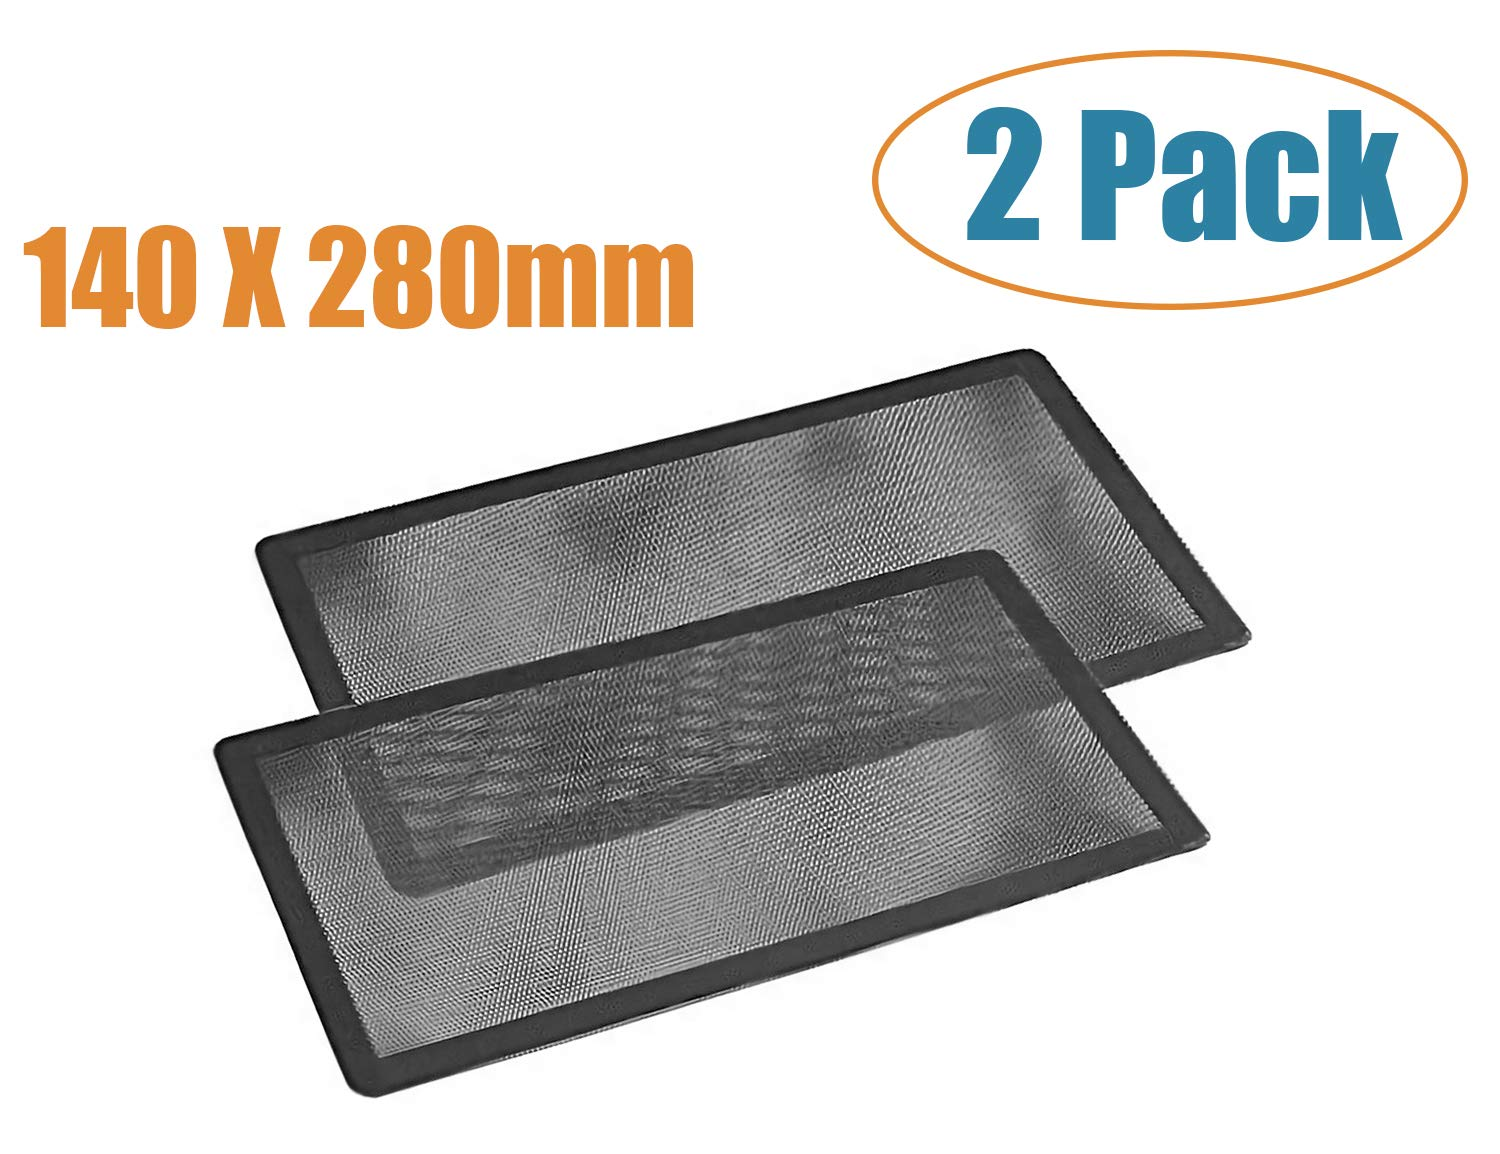 140mm x 2 Magnetic Frame Dust Filter, Computer Dust Filter and PC Computer Case Fan Dust Filter Screen Dustproof Case Cover with Magnet, Ultra Fine PVC Mesh Set of 2 by SSIOIZZ